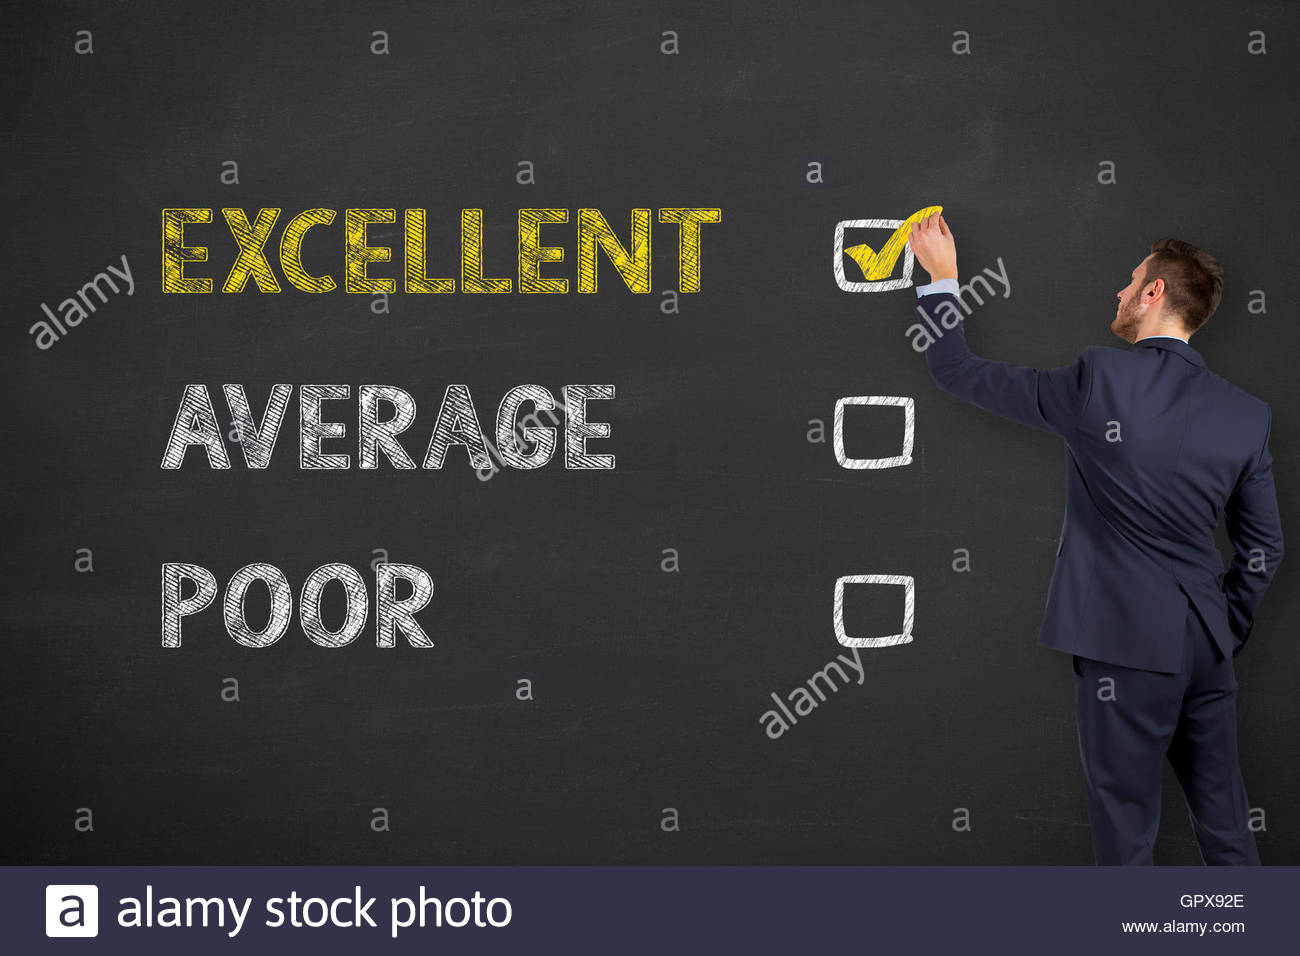 Excellent Customer Service Evaluation Form Drawing on Blackboard - Stock Image